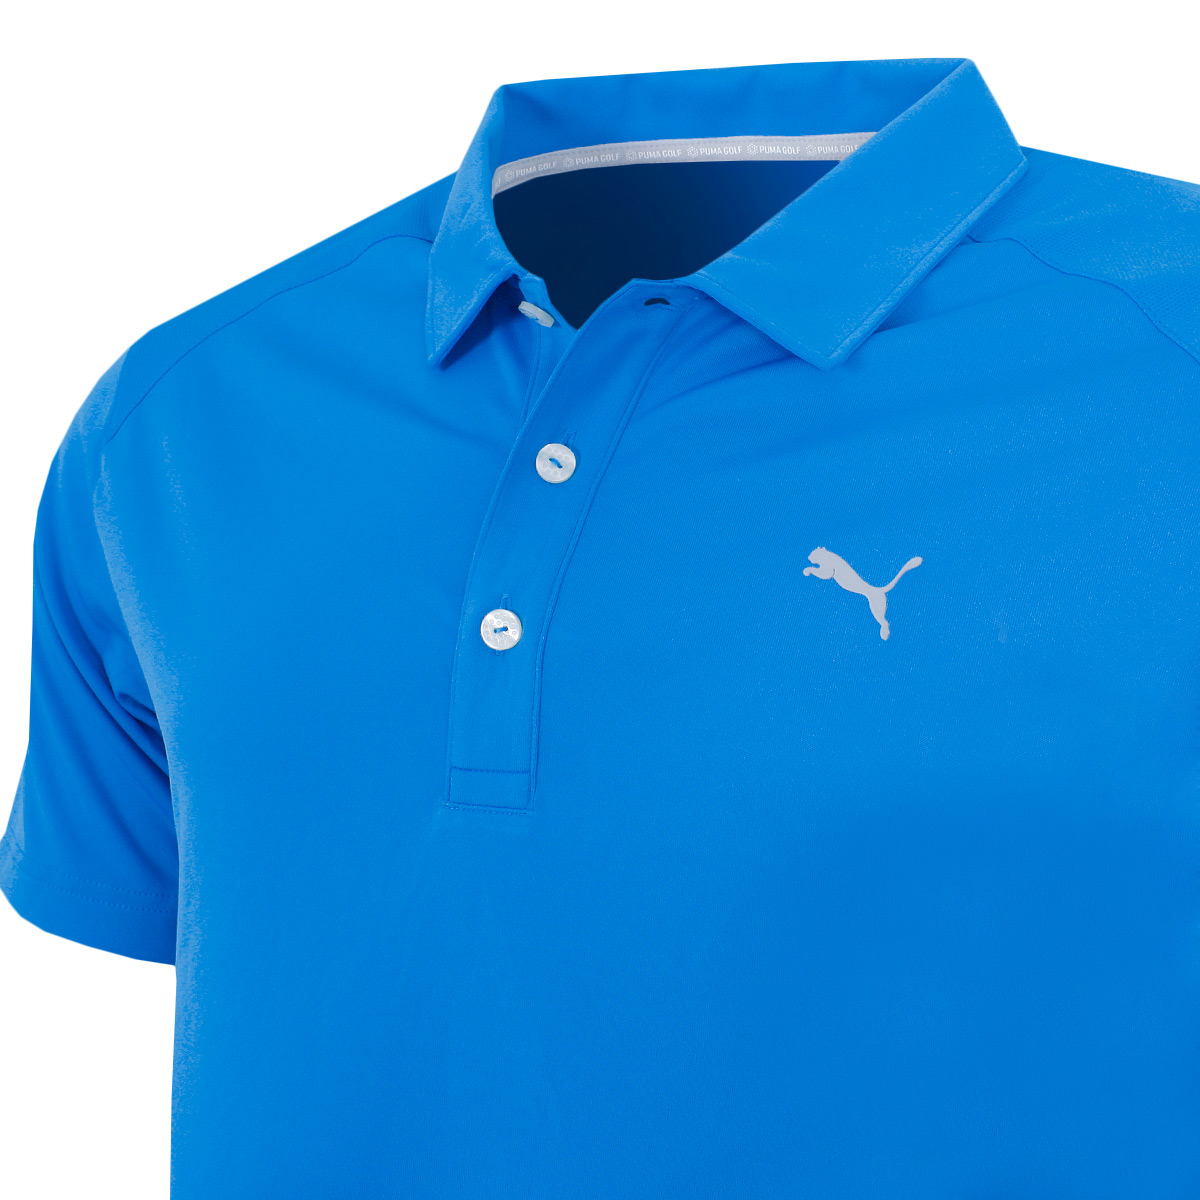 Puma-Golf-Mens-Essential-Pounce-Polo-Shirt-DryCell-Lightweight-Tech-43-OFF-RRP thumbnail 22